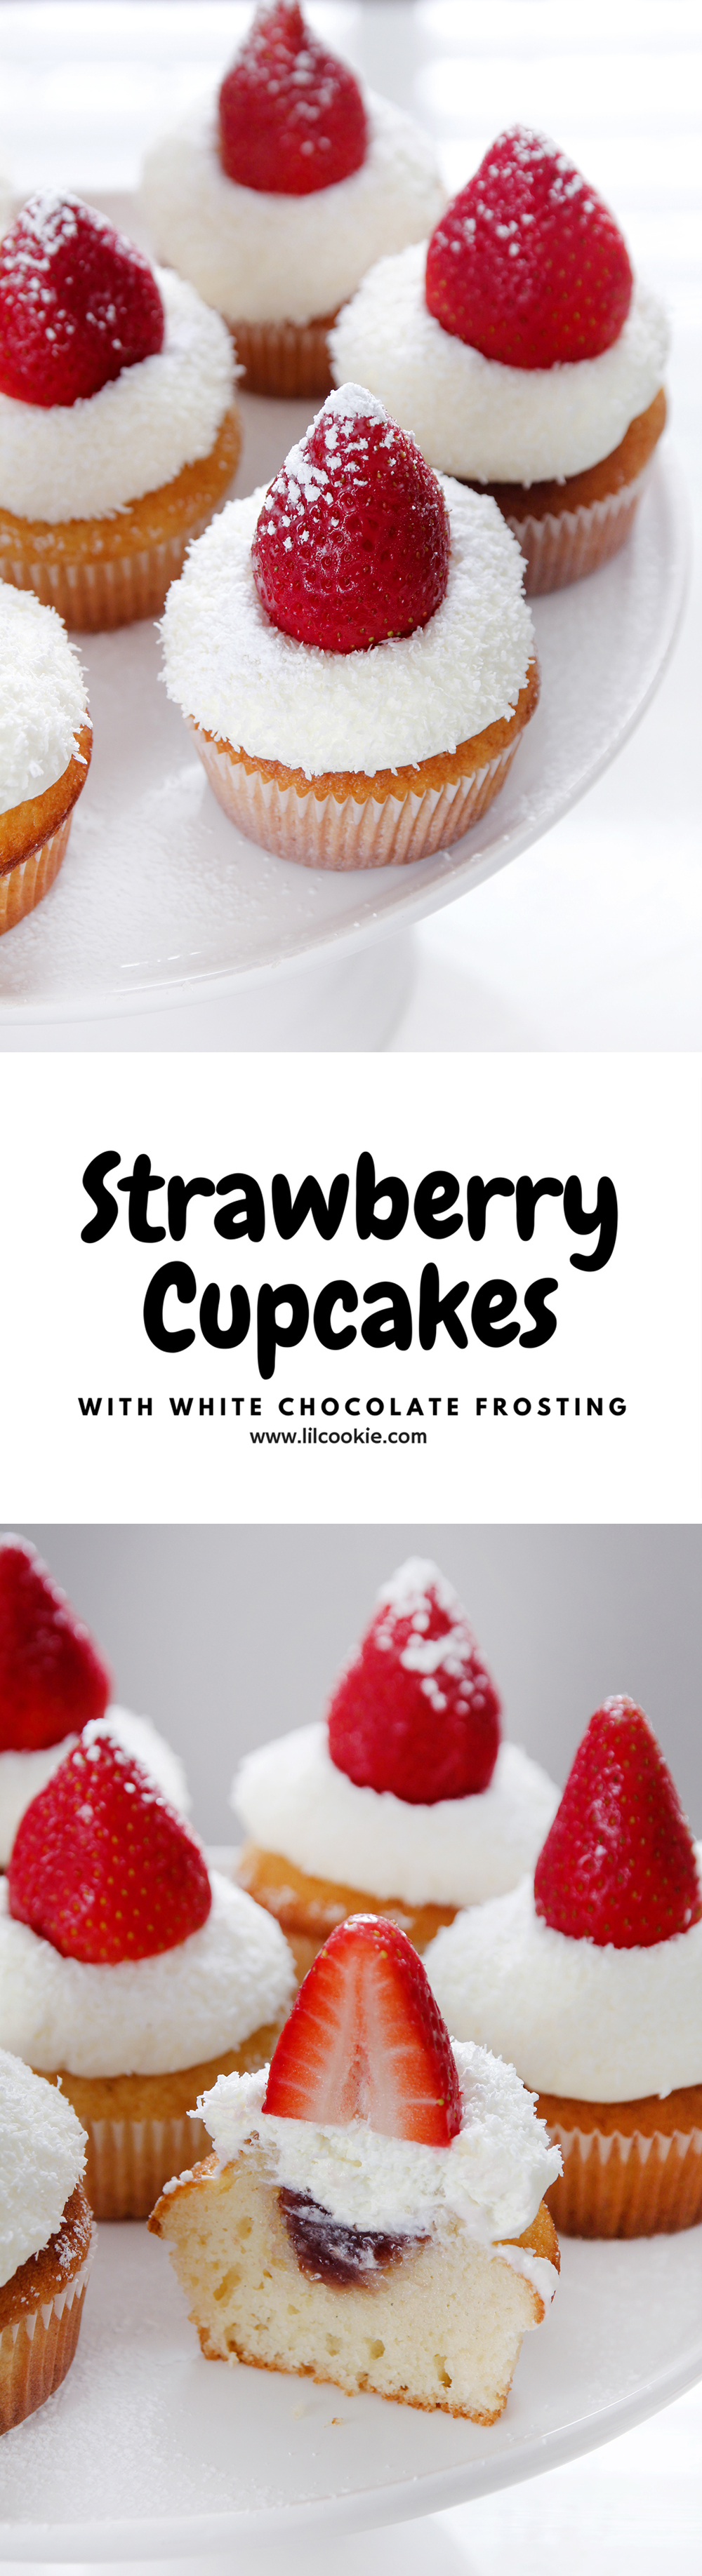 Strawberry Cupcakes with White Chocolate Frosting #strawberry #cupcakes #baking #recipe #whitechocolate #valentinesday